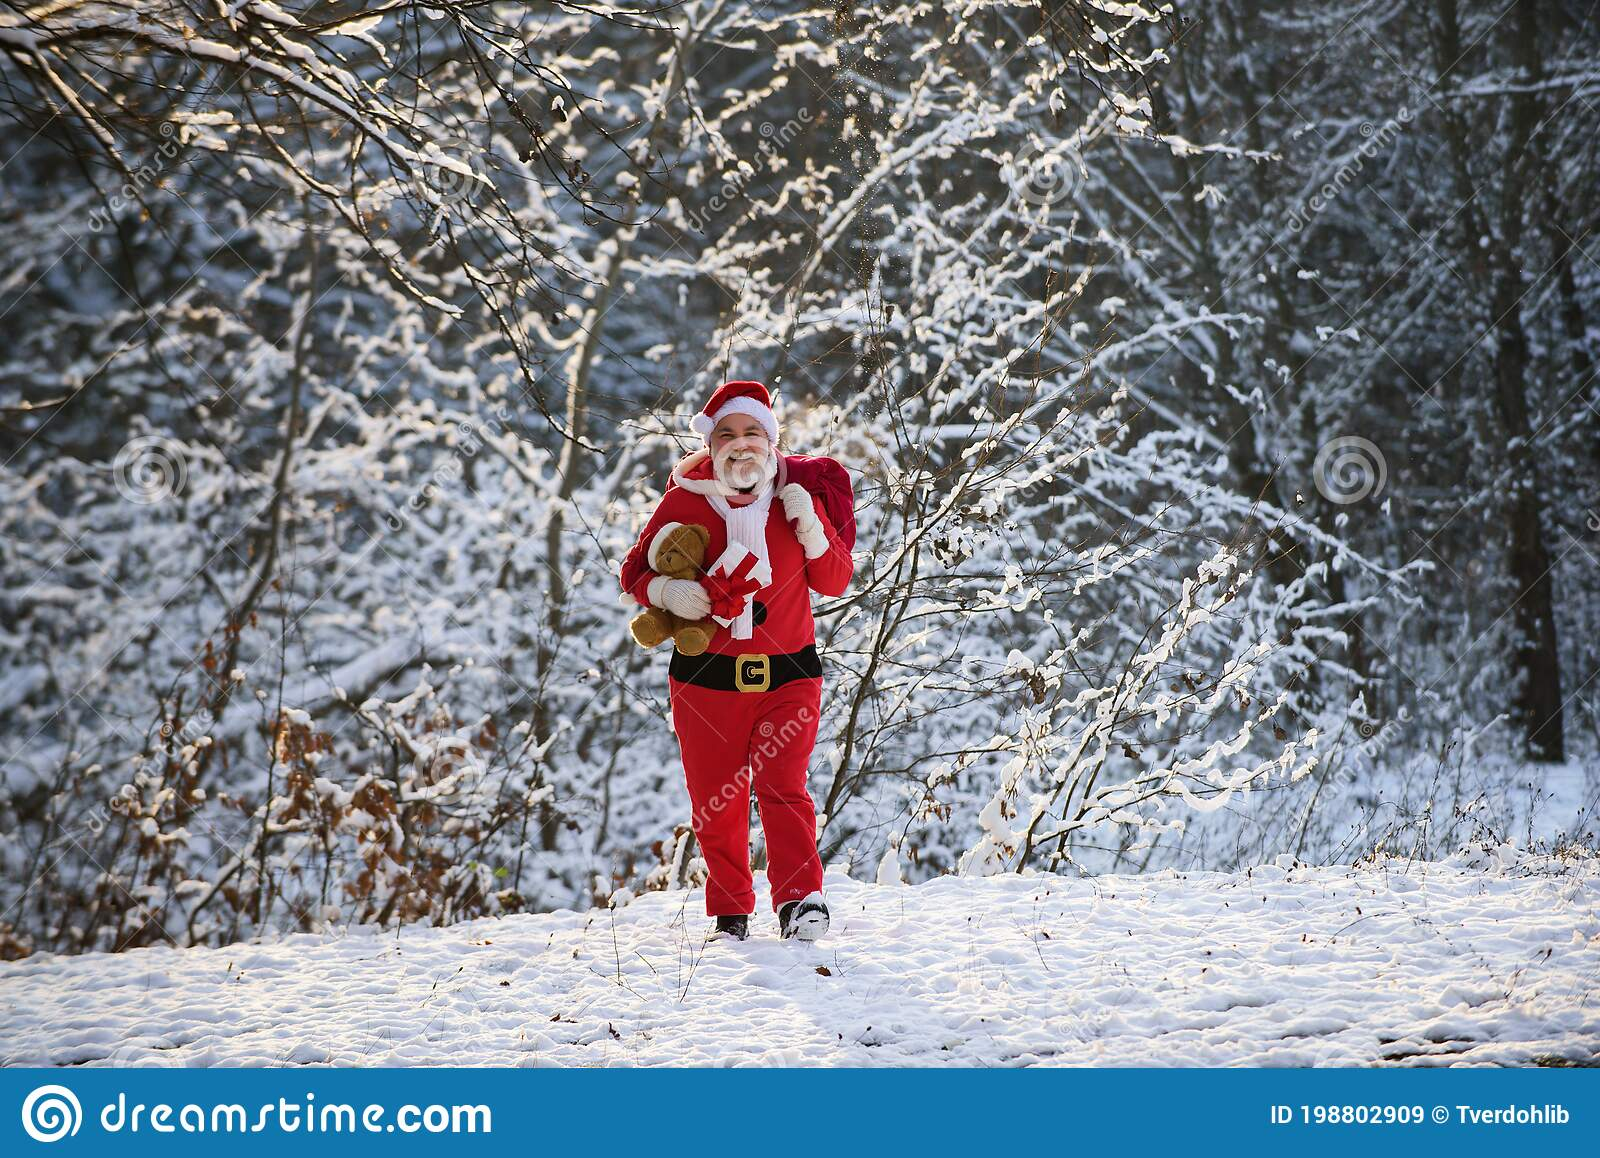 Santa Grandfather Deliver Gifts Claus In Christmas Suits In Snowy Winter Mountain Stock Image Image Of Event Festive 198802909